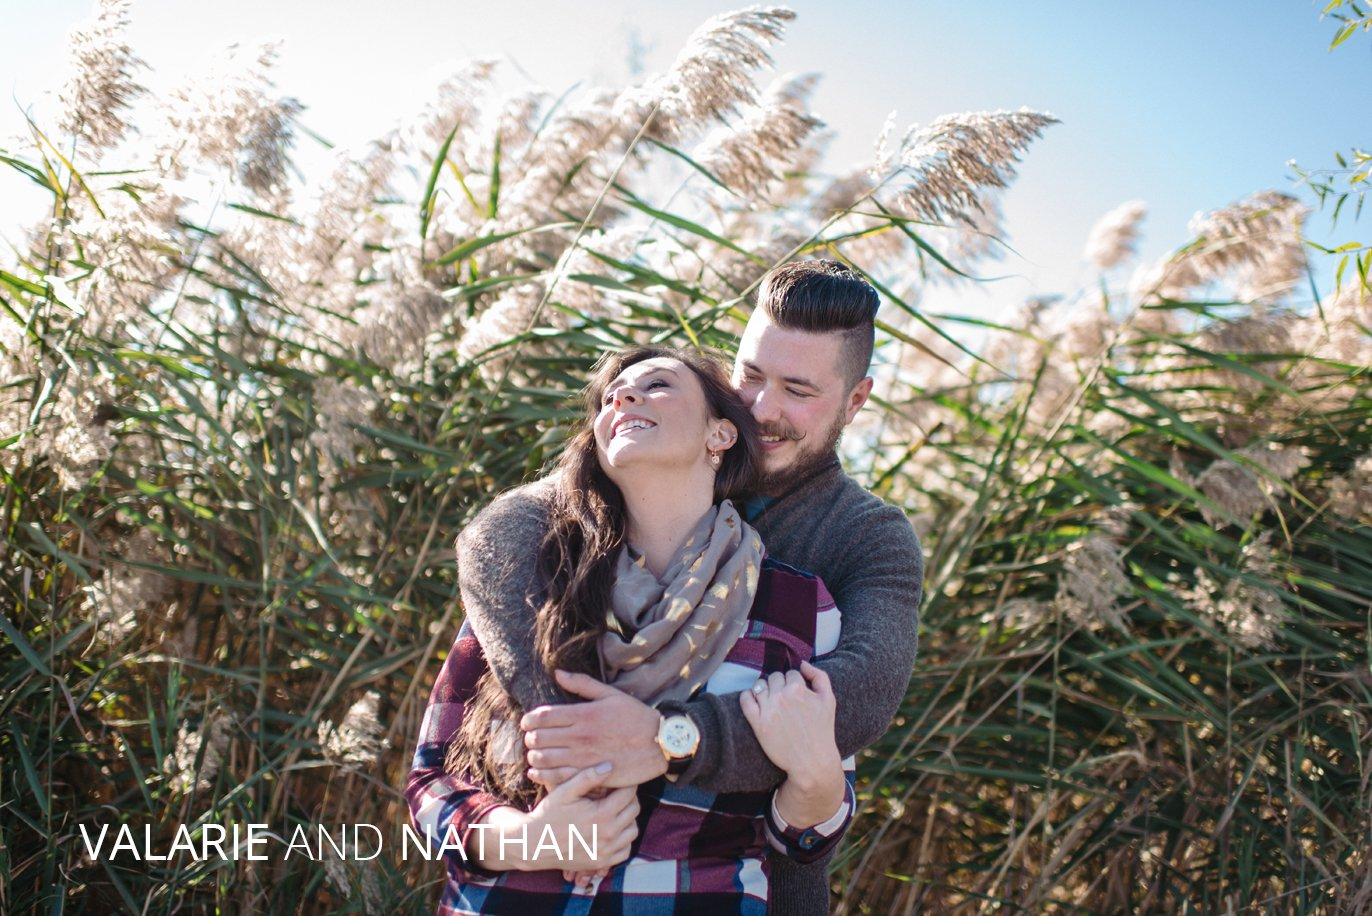 Valarie and Nathan hug in a field of tall grasses